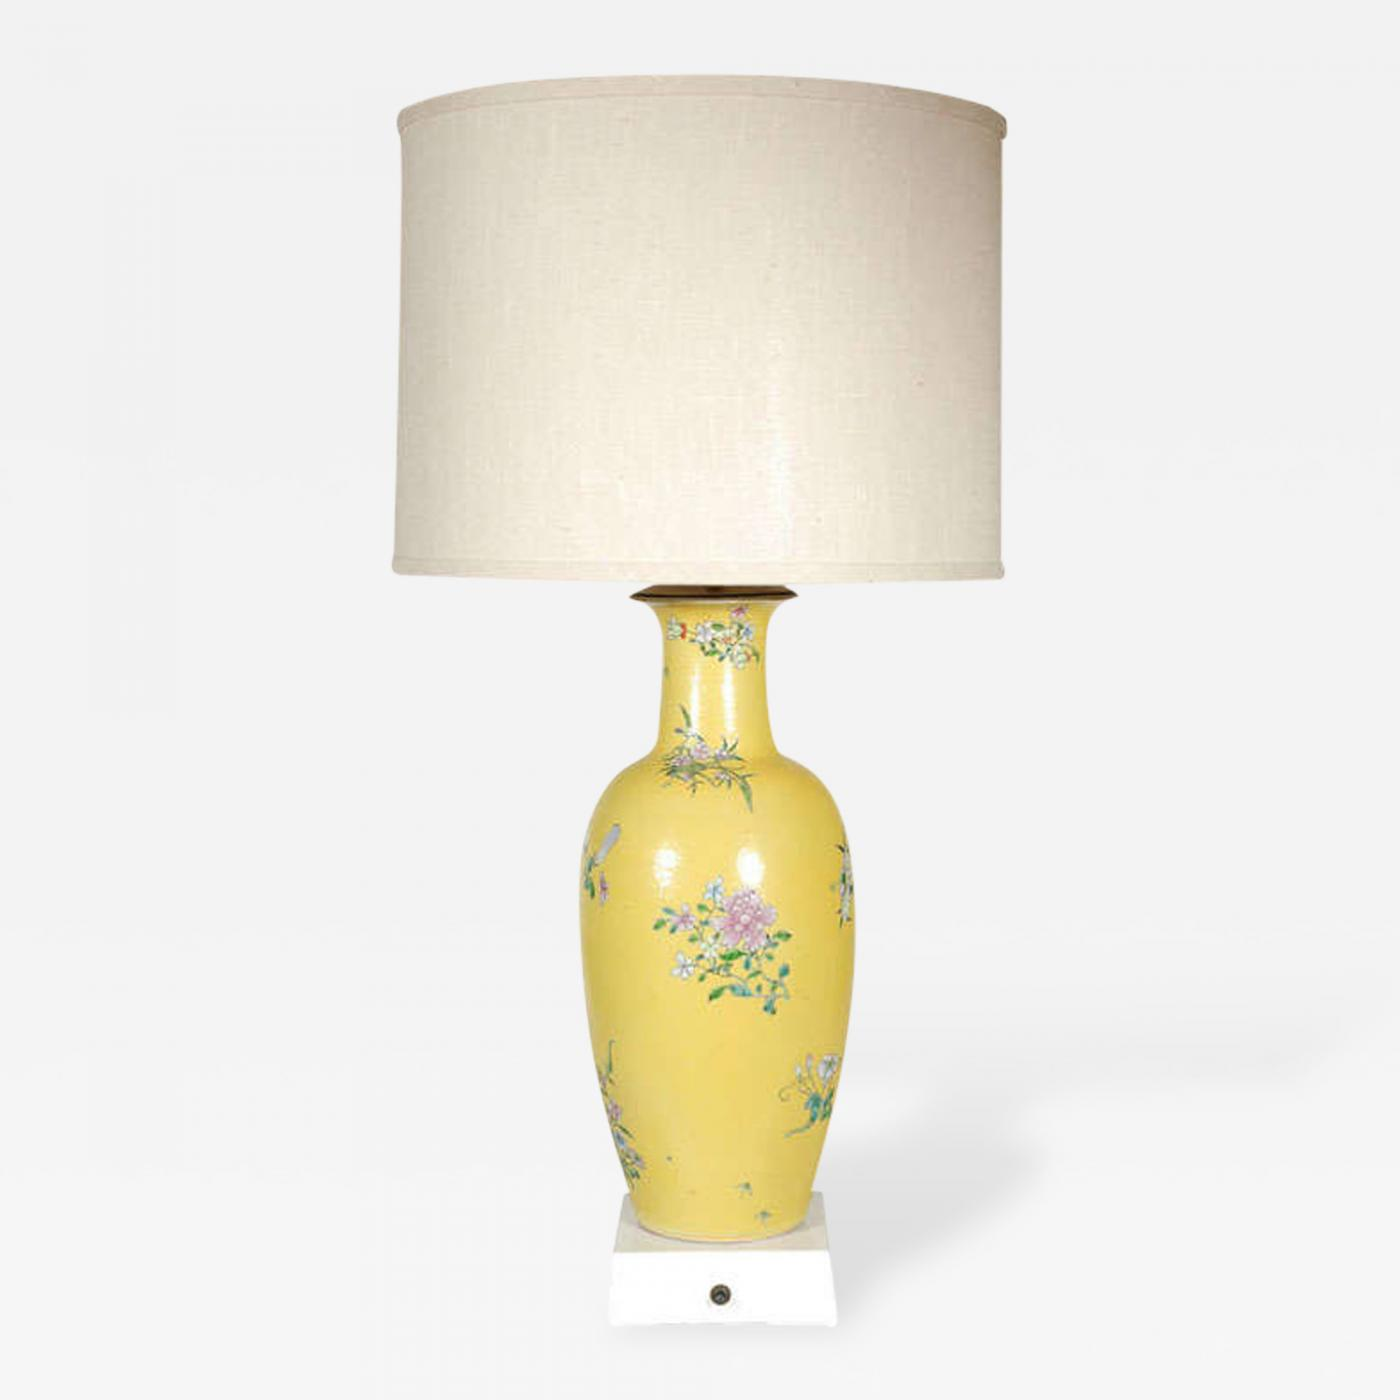 William billy haines custom table lamp designed by william haines listings furniture lighting table lamps geotapseo Gallery